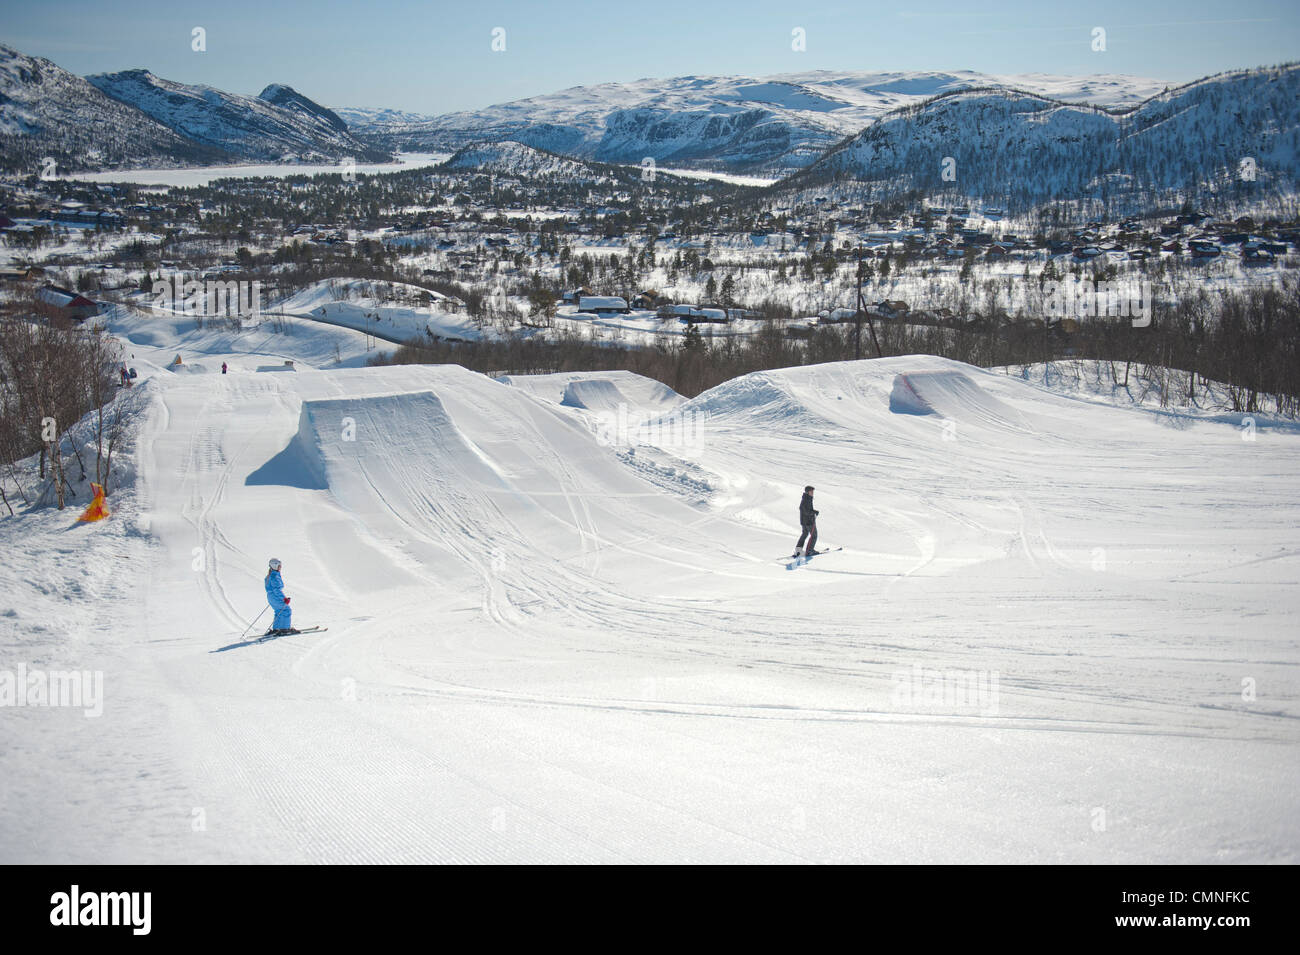 The freestyle park on the slopes of the skiing resort Hovden in southern Norway's Setesday - Stock Image